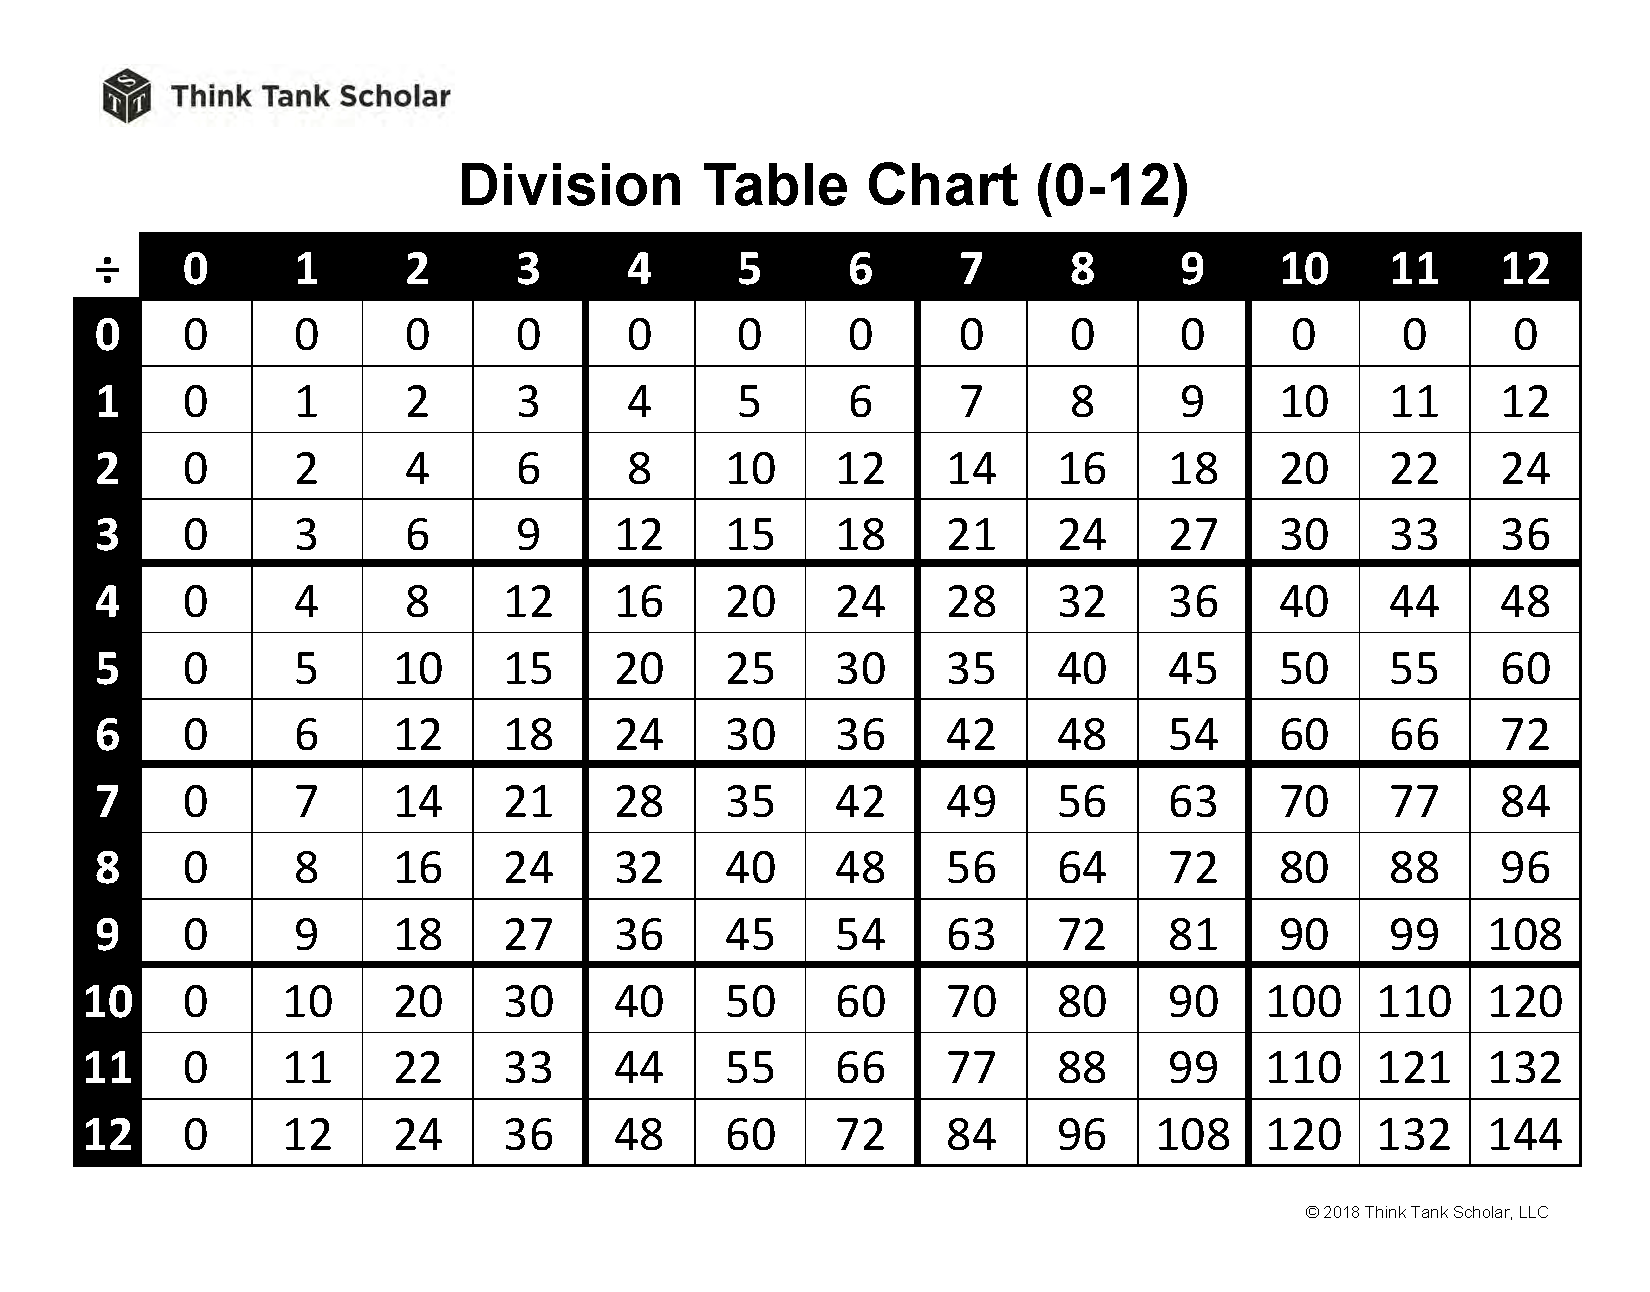 Division Table Chart 0-12 Printable PDF (FREE)